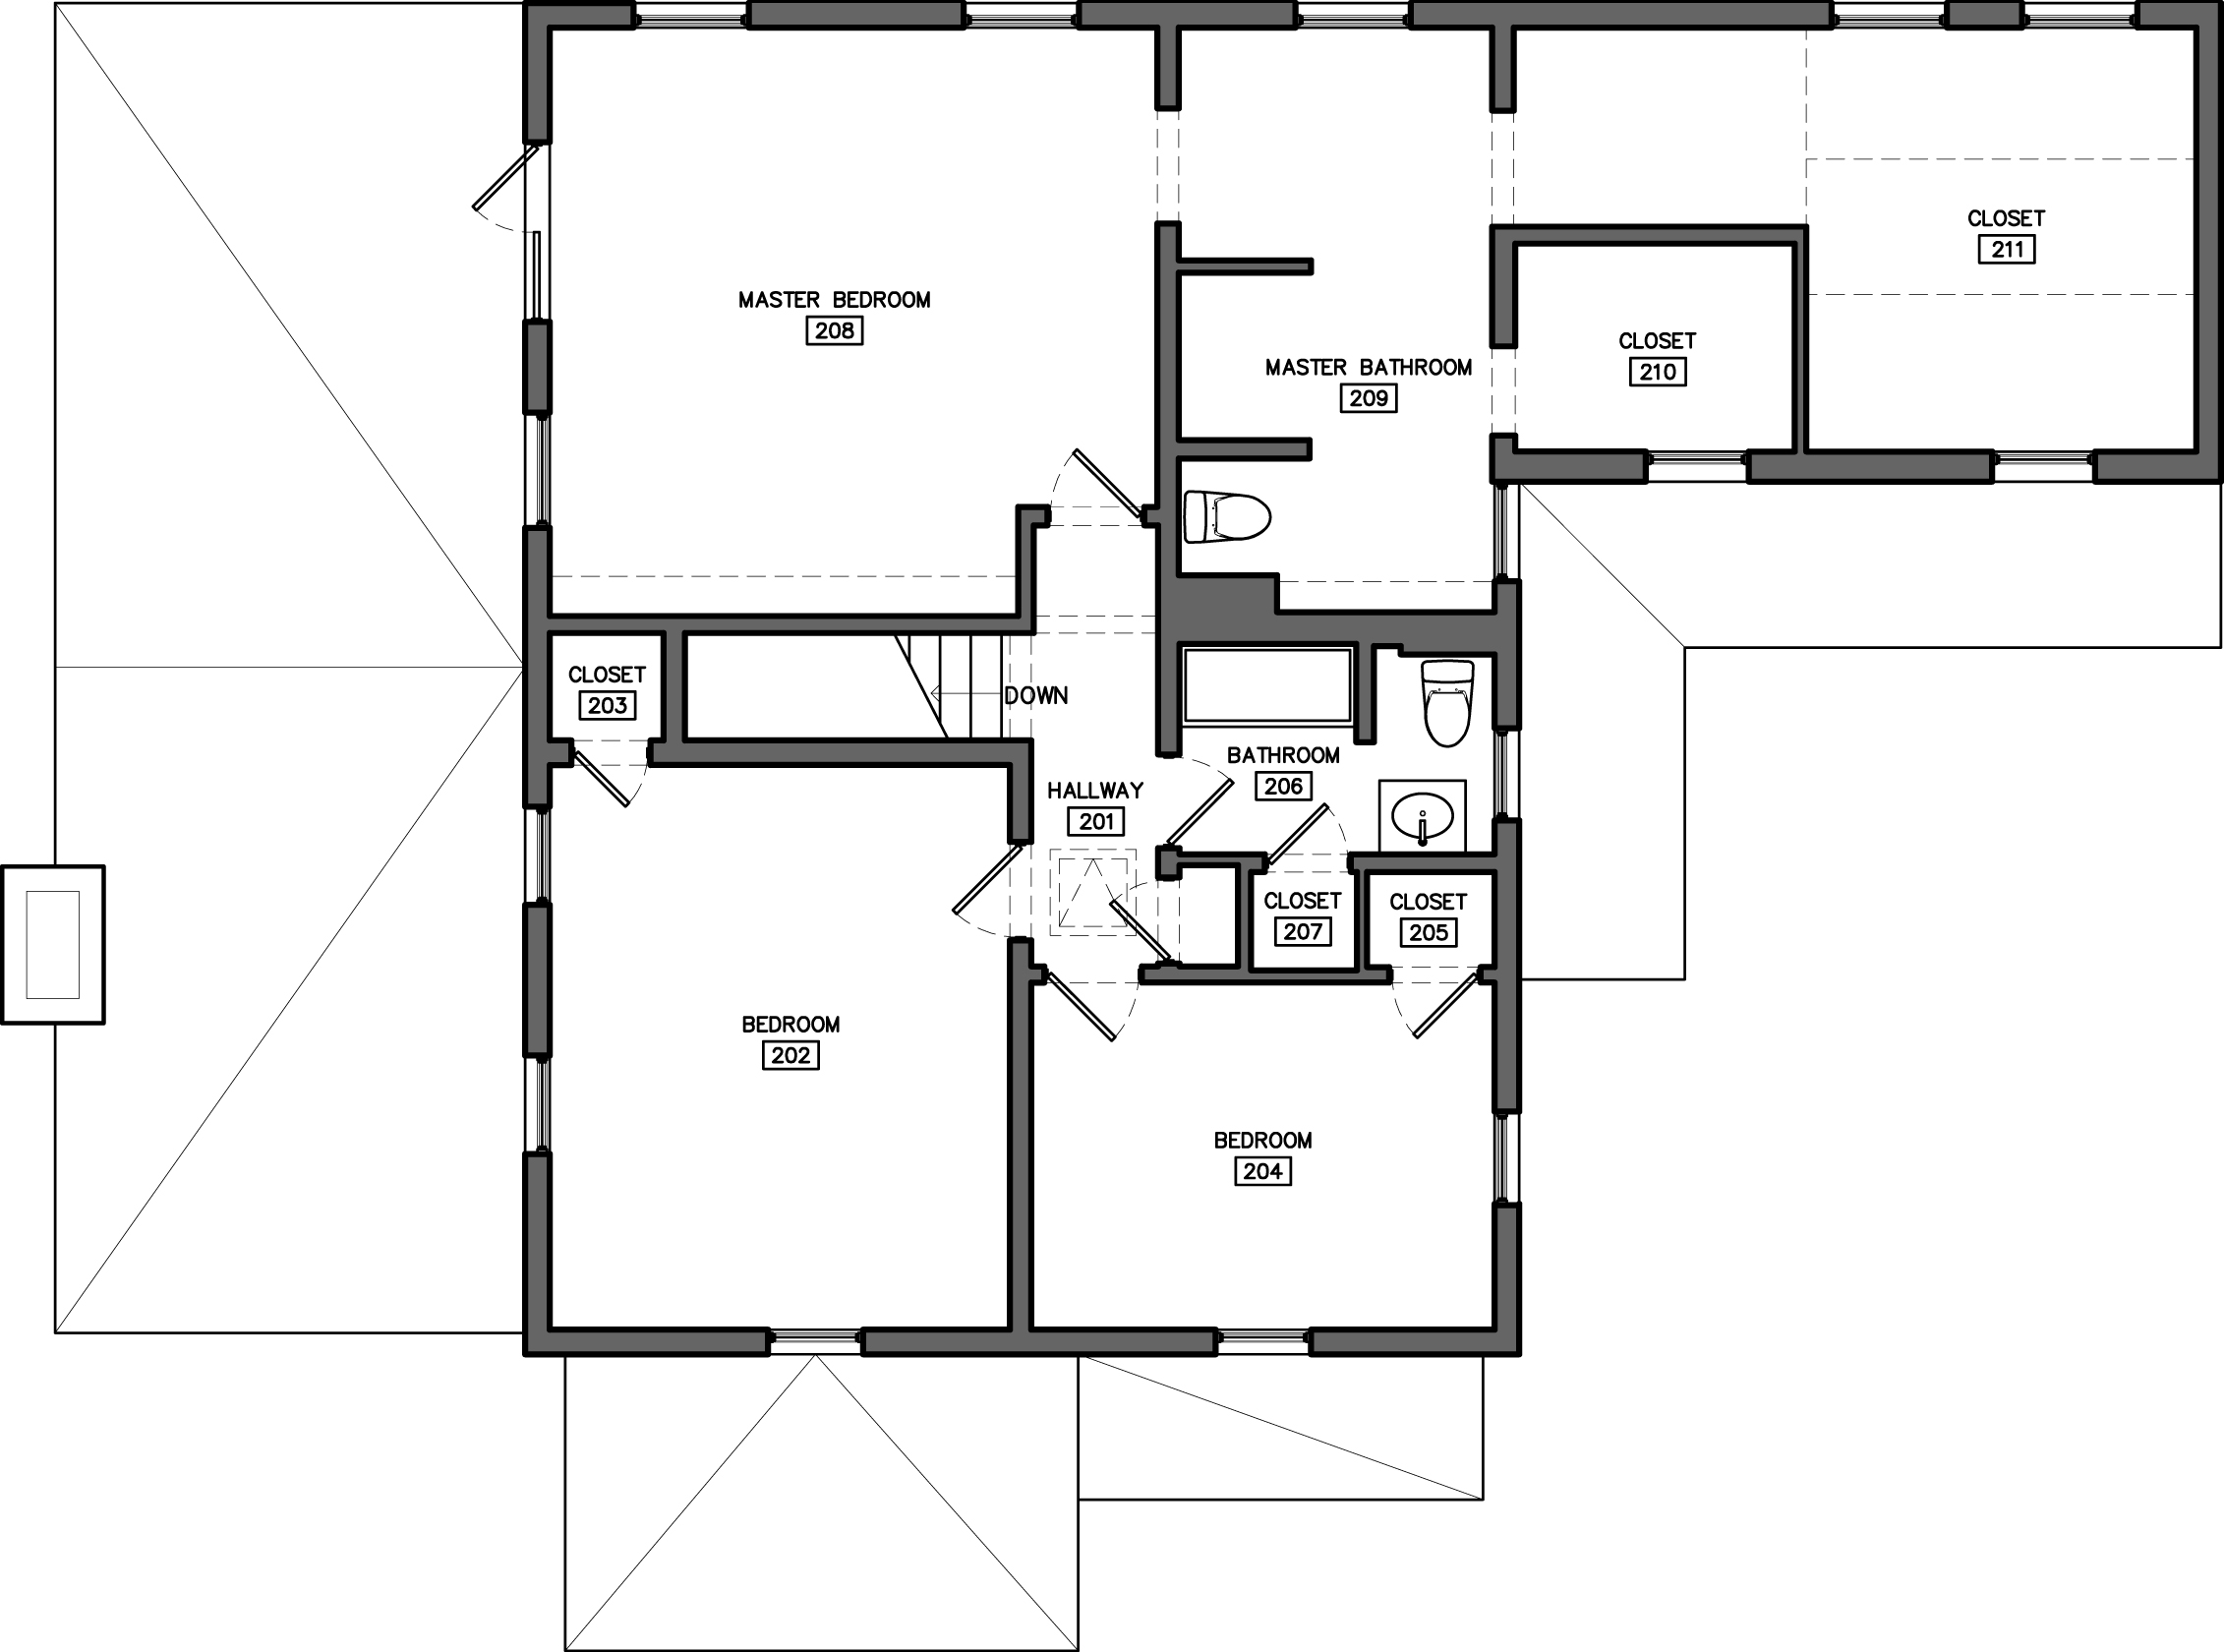 Floor plans for existing houses - House design plans